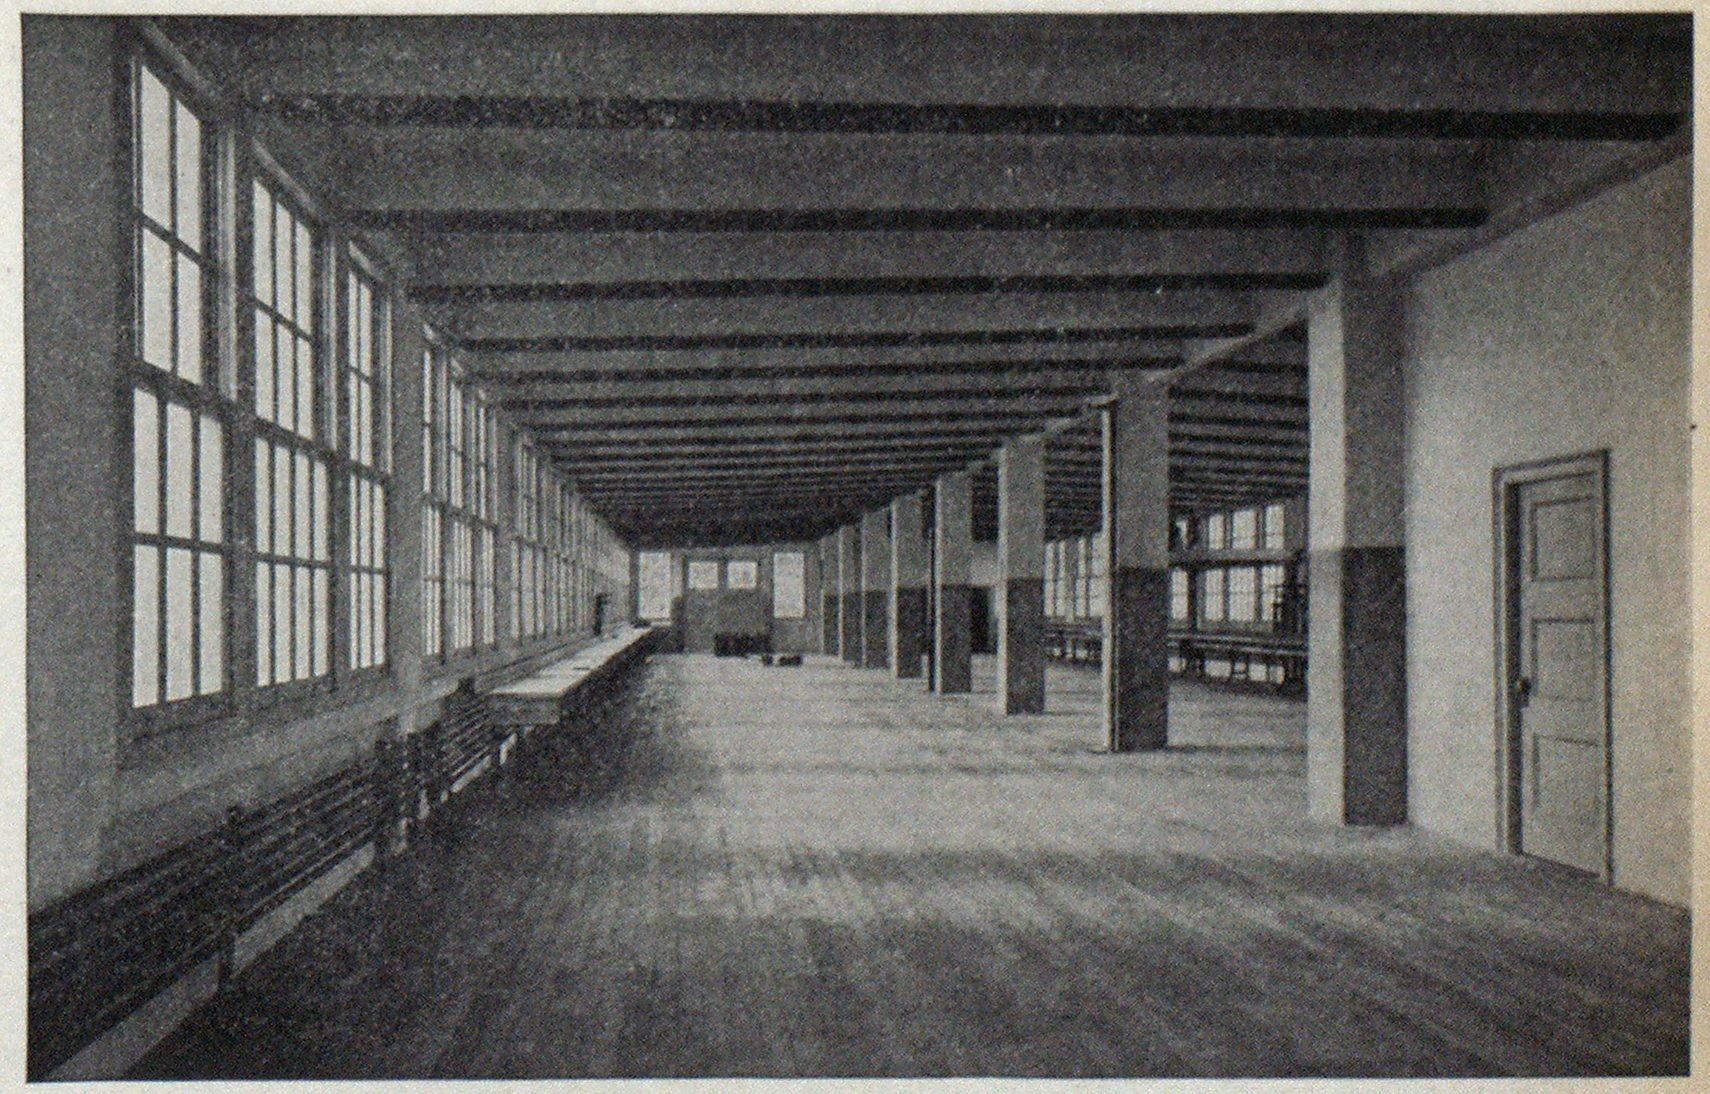 Interior View of Jewelry Fireproof Factory.